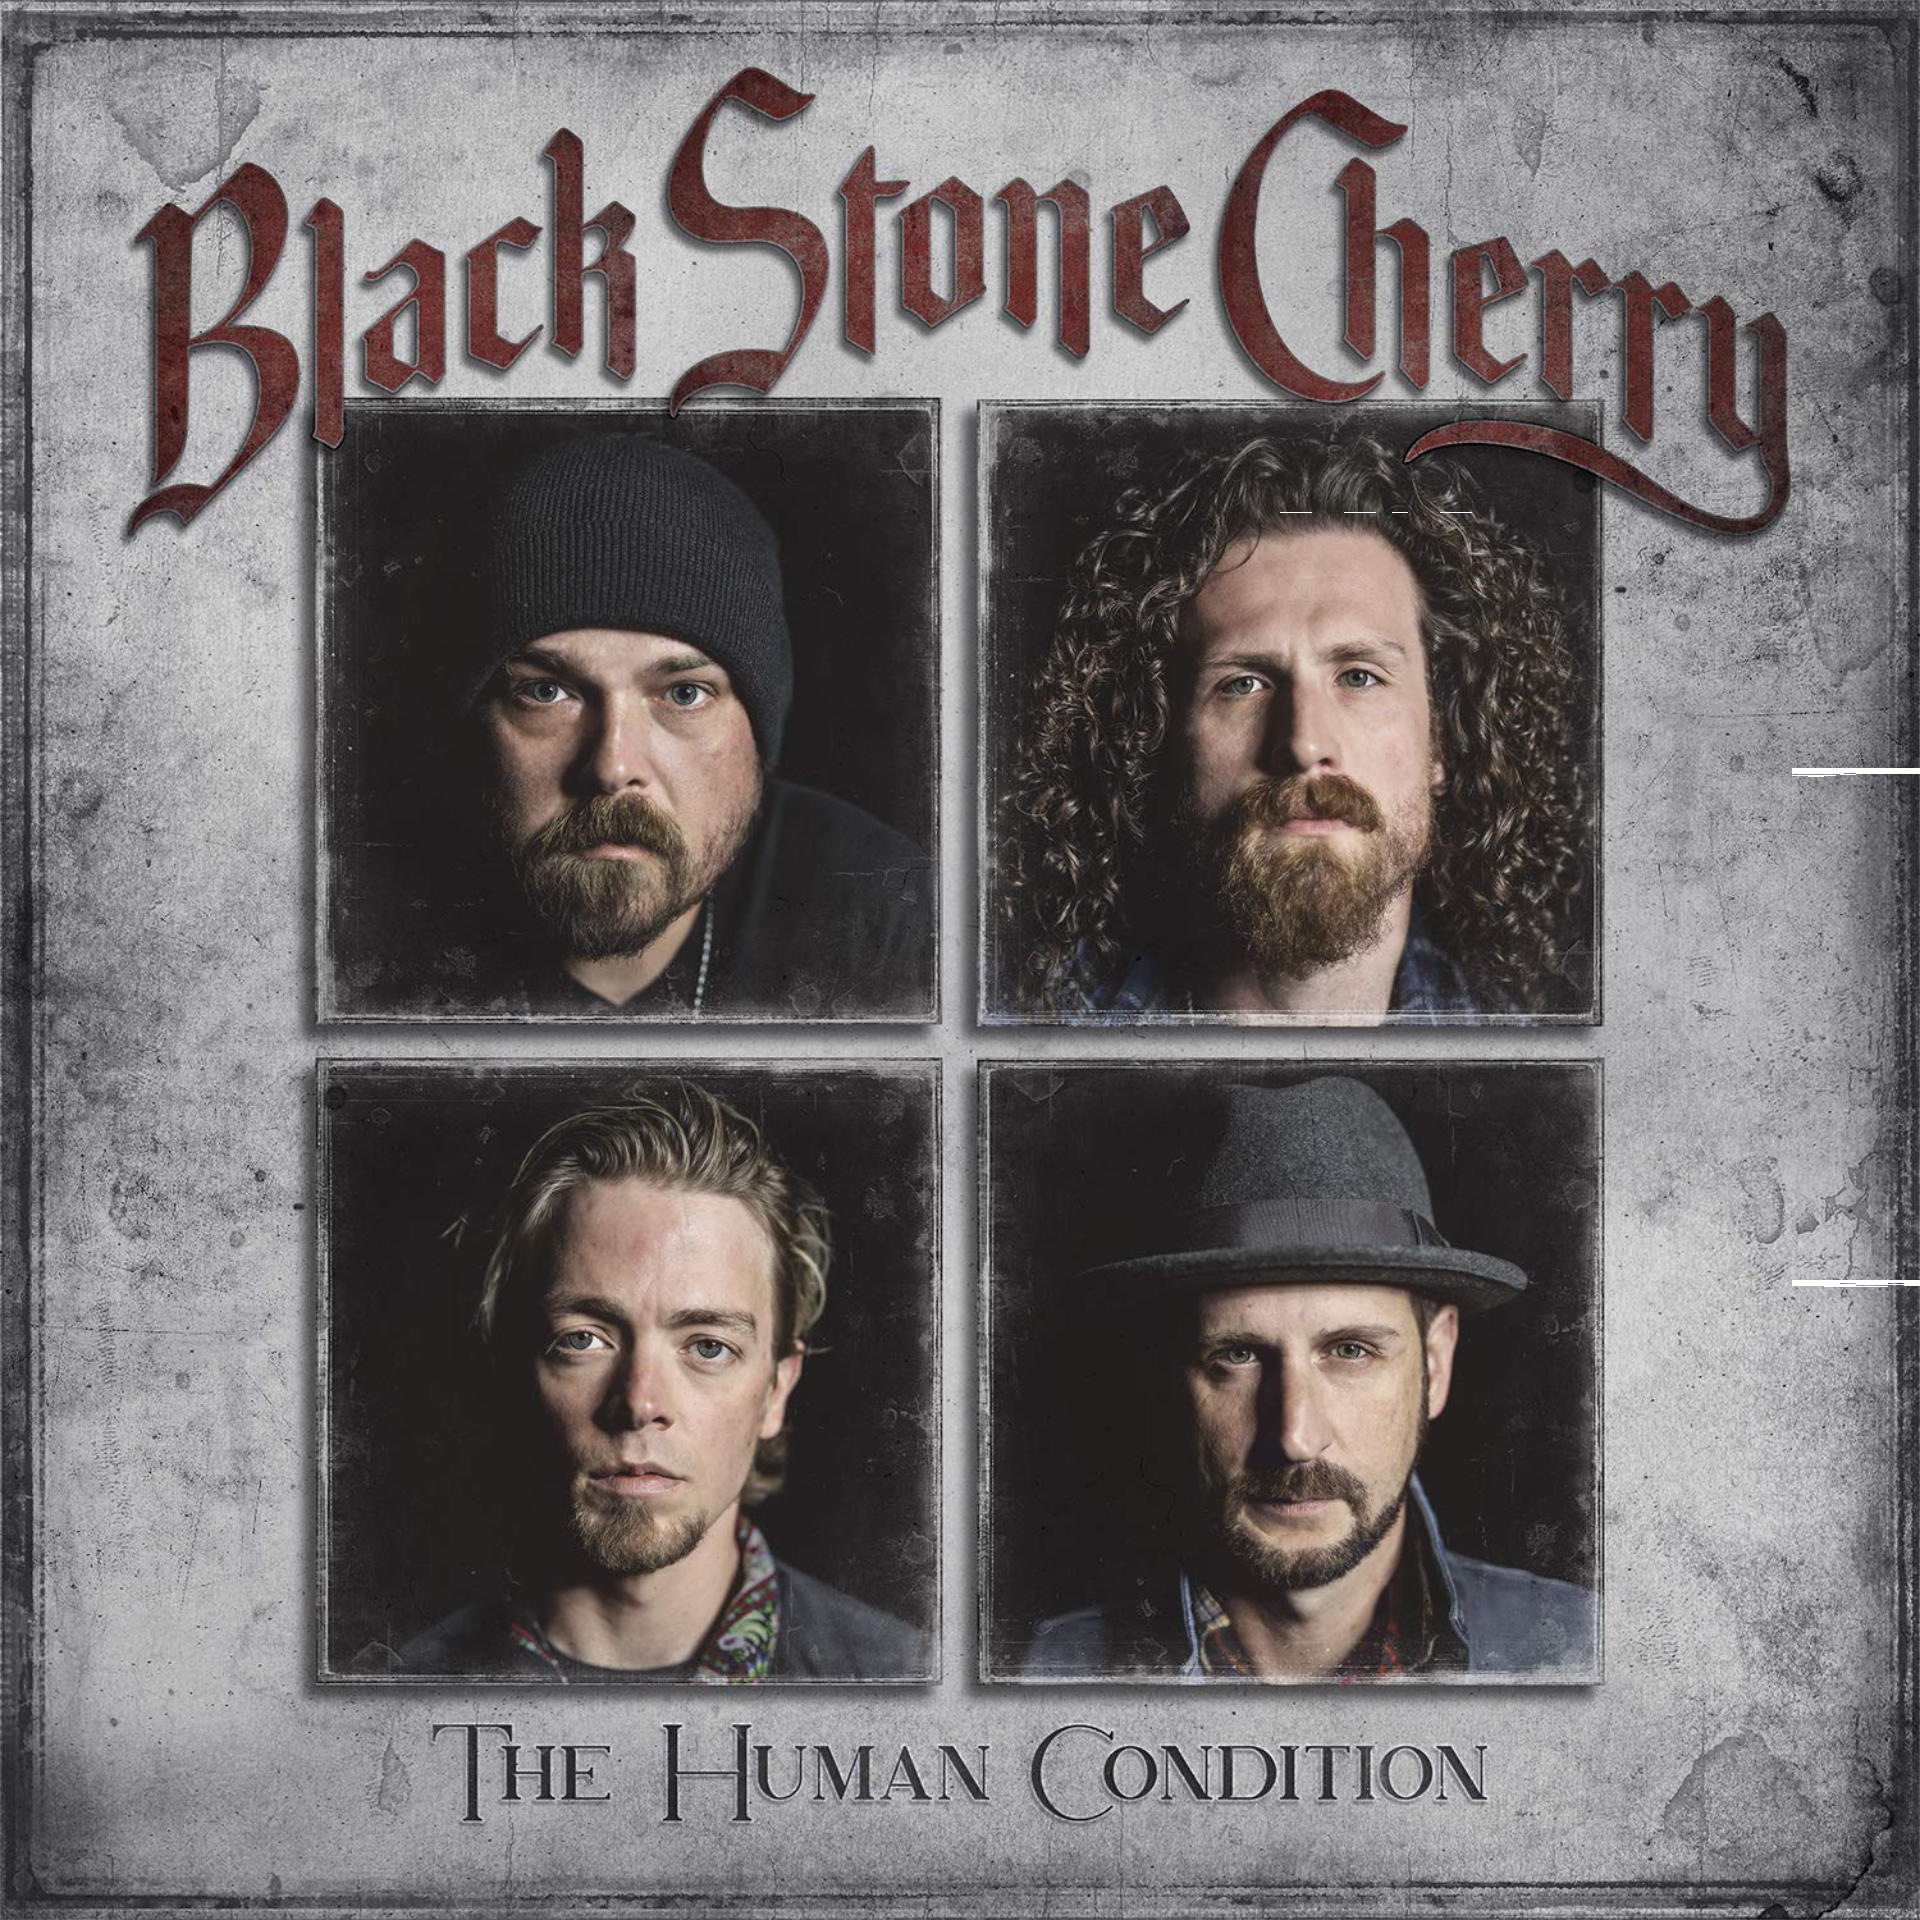 Music Monday - Black Stone Cherry - The Human Condition - New Music New Album New Release